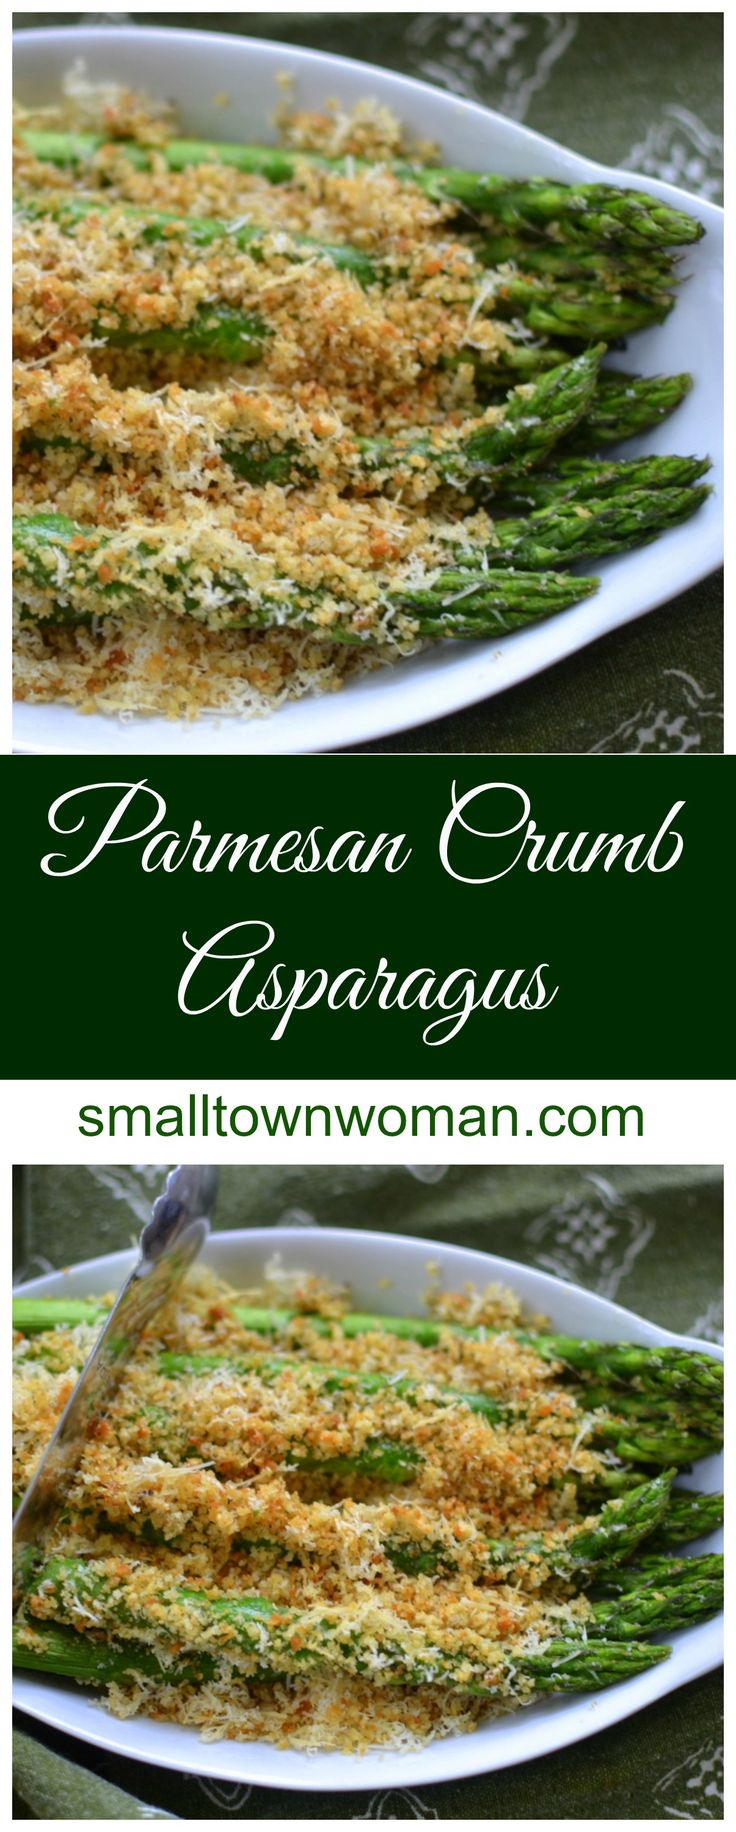 This Parmesan Crumb Asparagus recipe is so delectable.  There are so many terrific health benefits to asparagus!